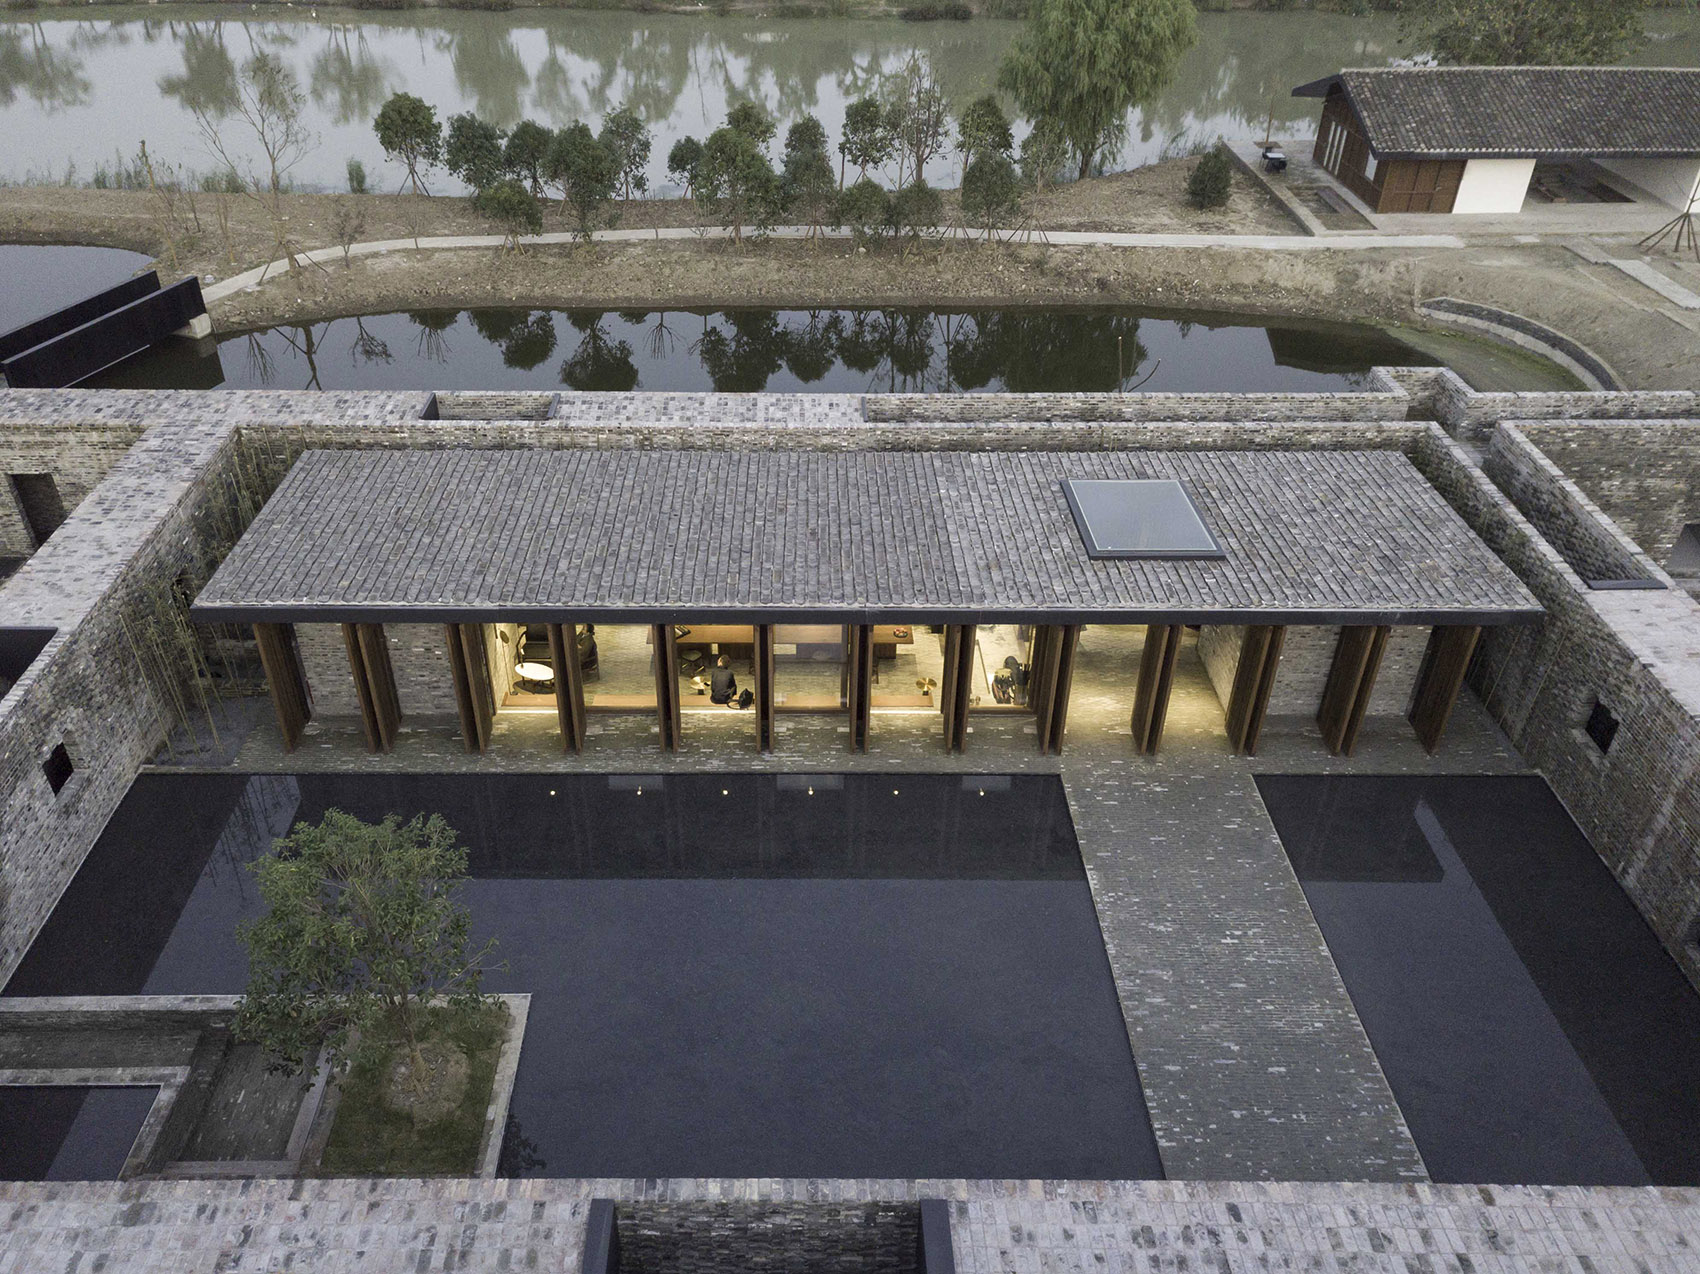 005-The-Walled-Tsingpu-Yangzhou-Retreat-by-NeriHu.jpg